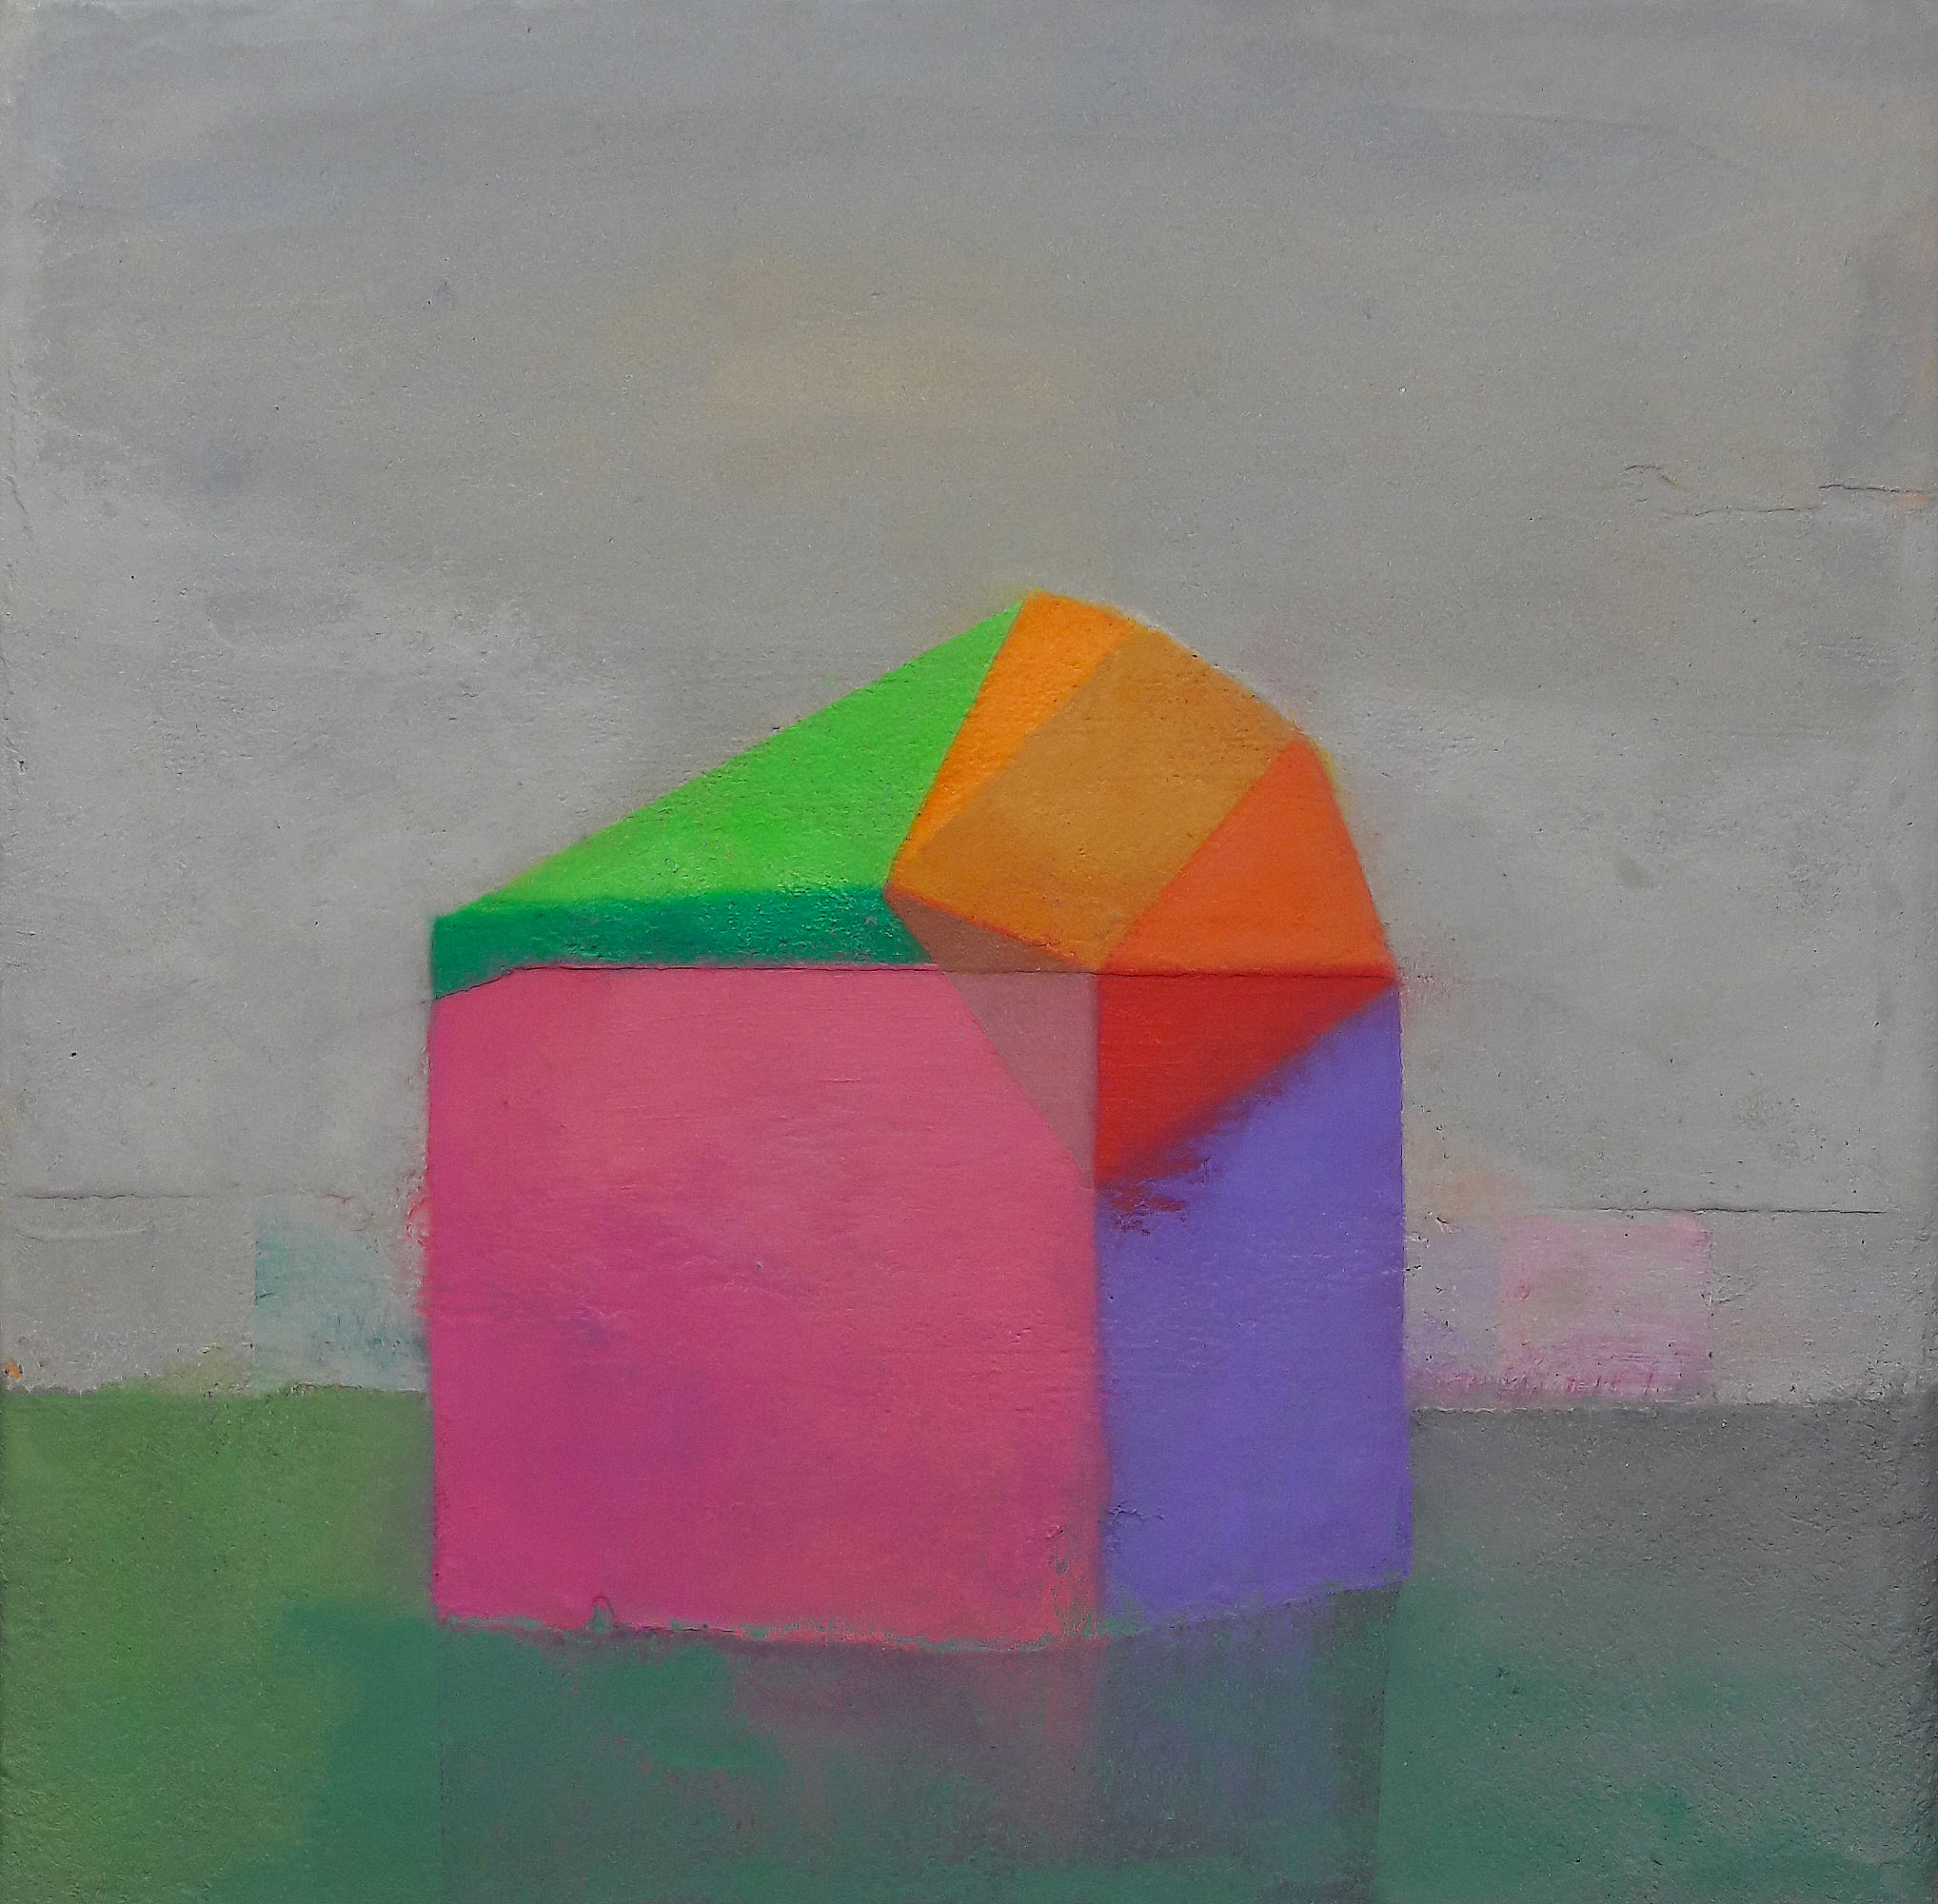 Tom Climent, Inverter, oil and plaster on canvas, 25x25cm